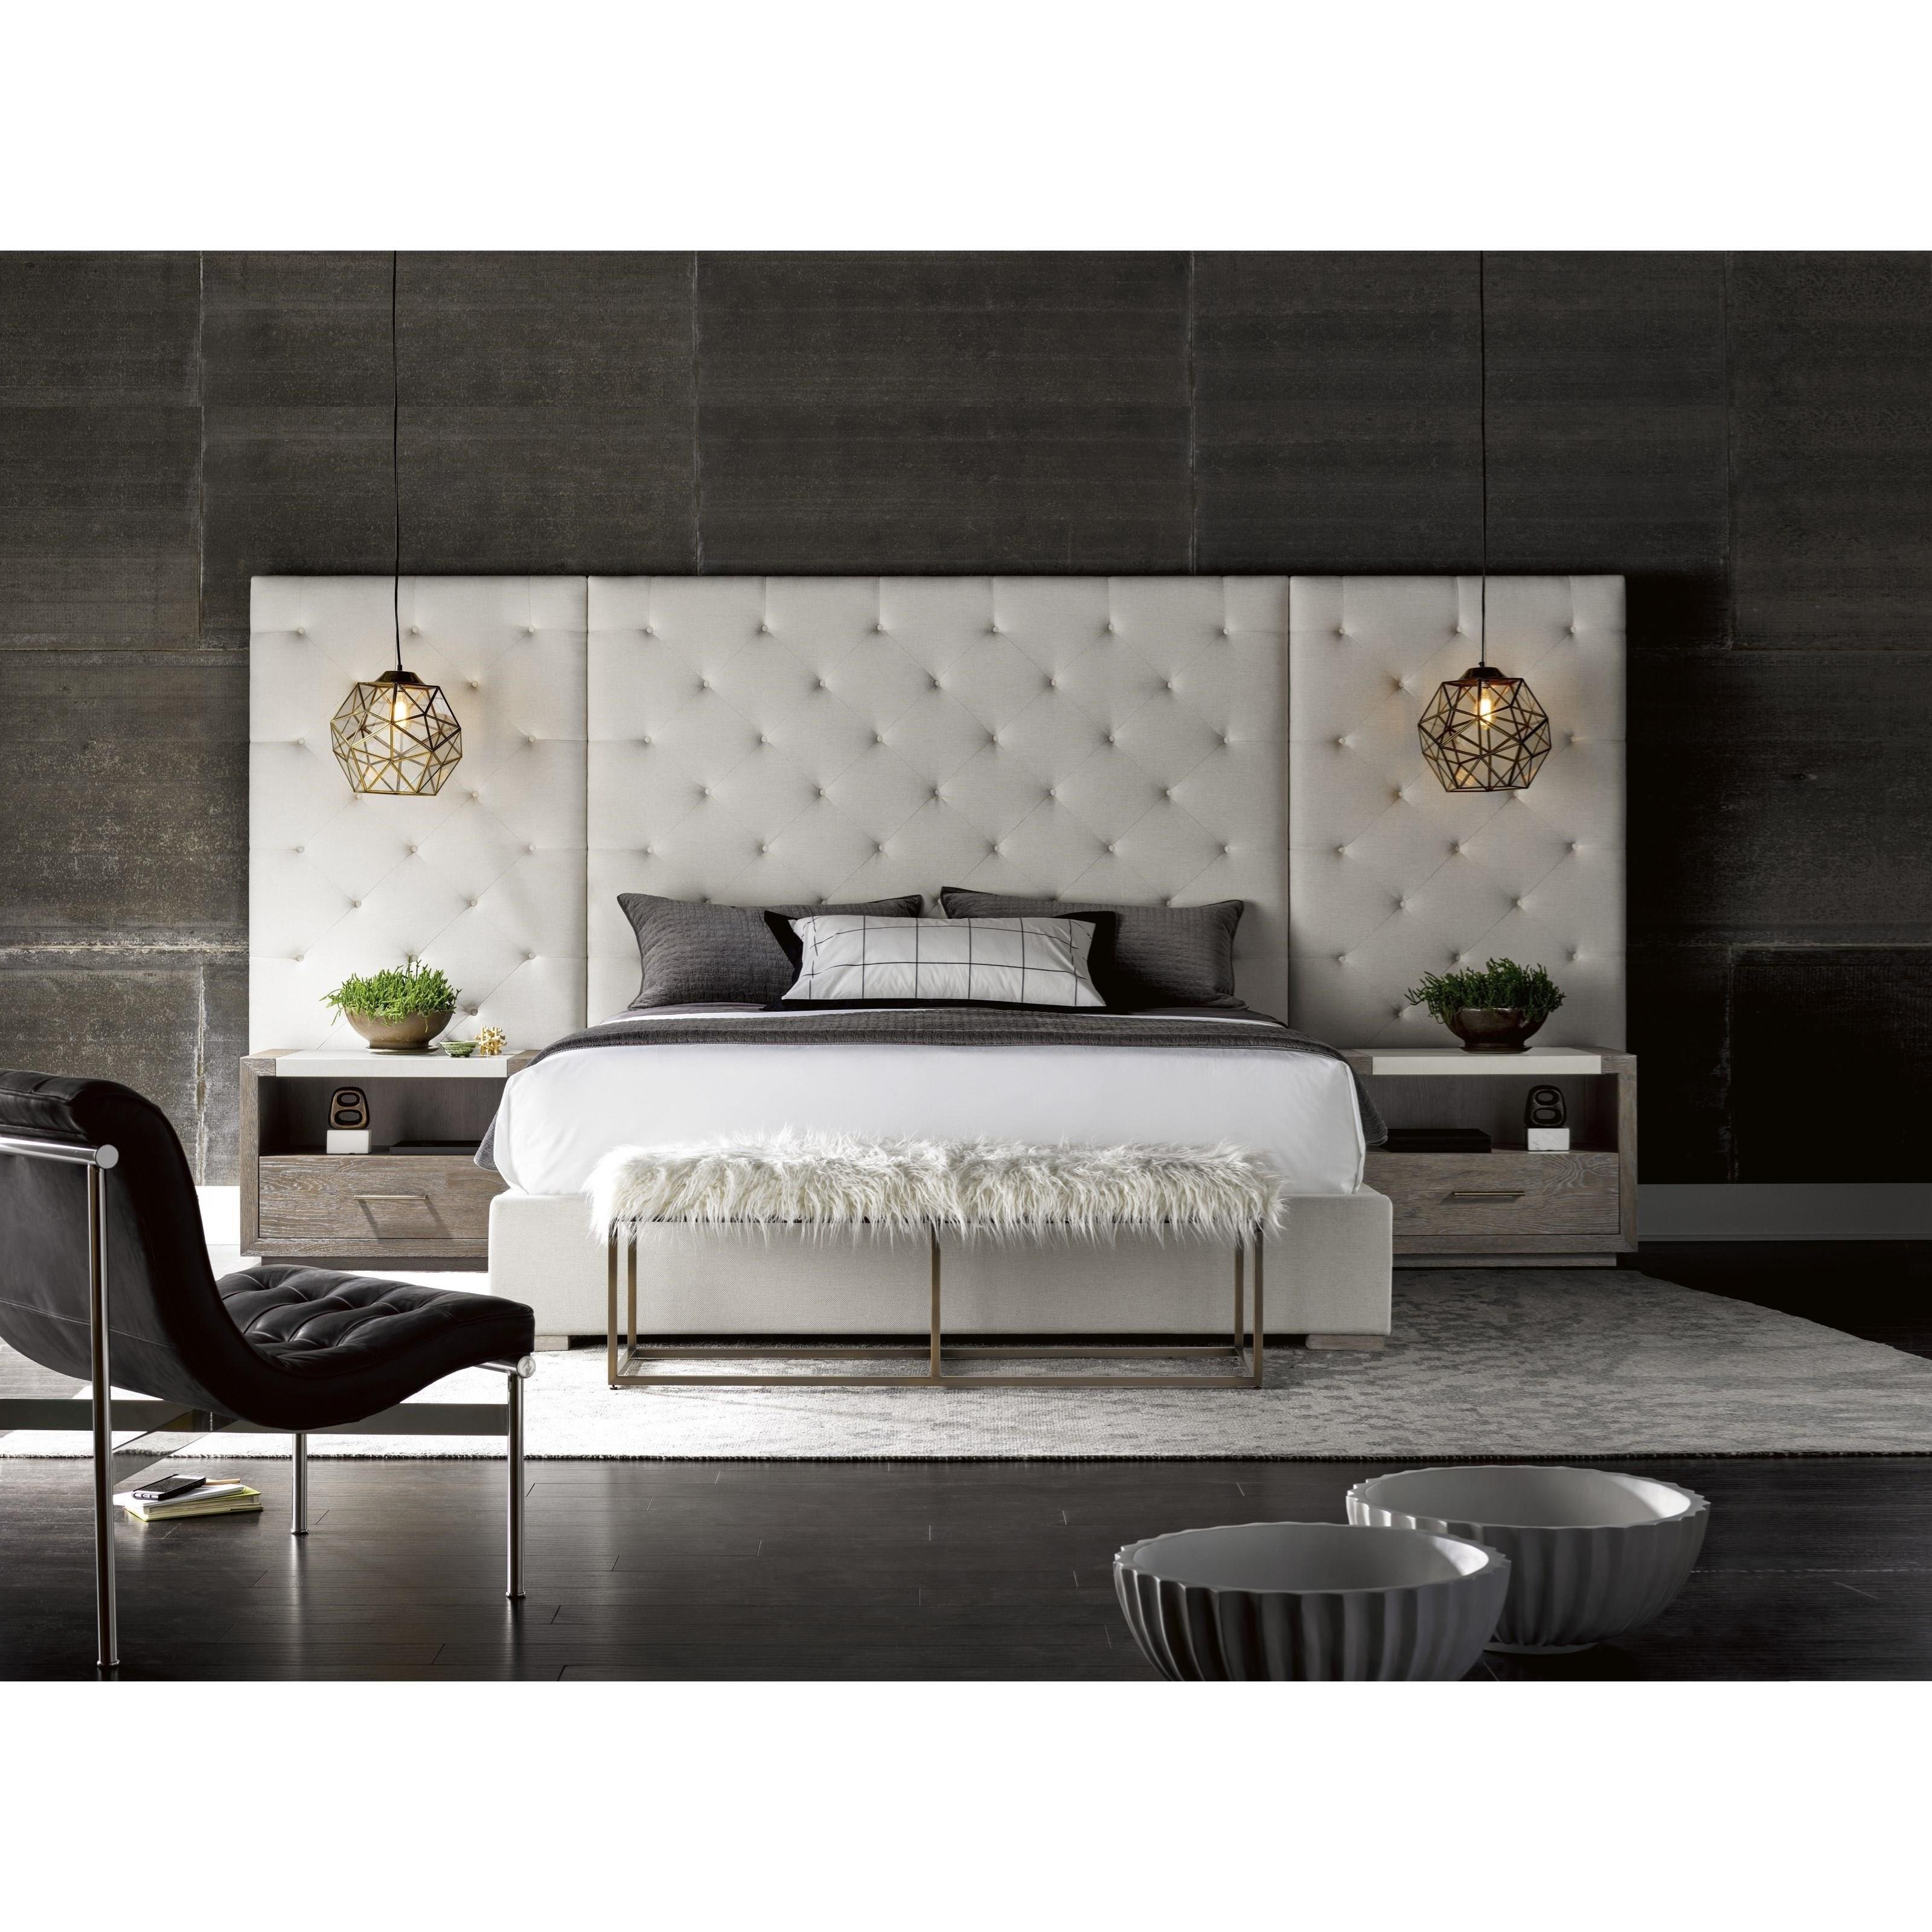 Modern Accent Wall Panel For King Bed: Universal Modern Brando Cal King Bed With Tufted Panels